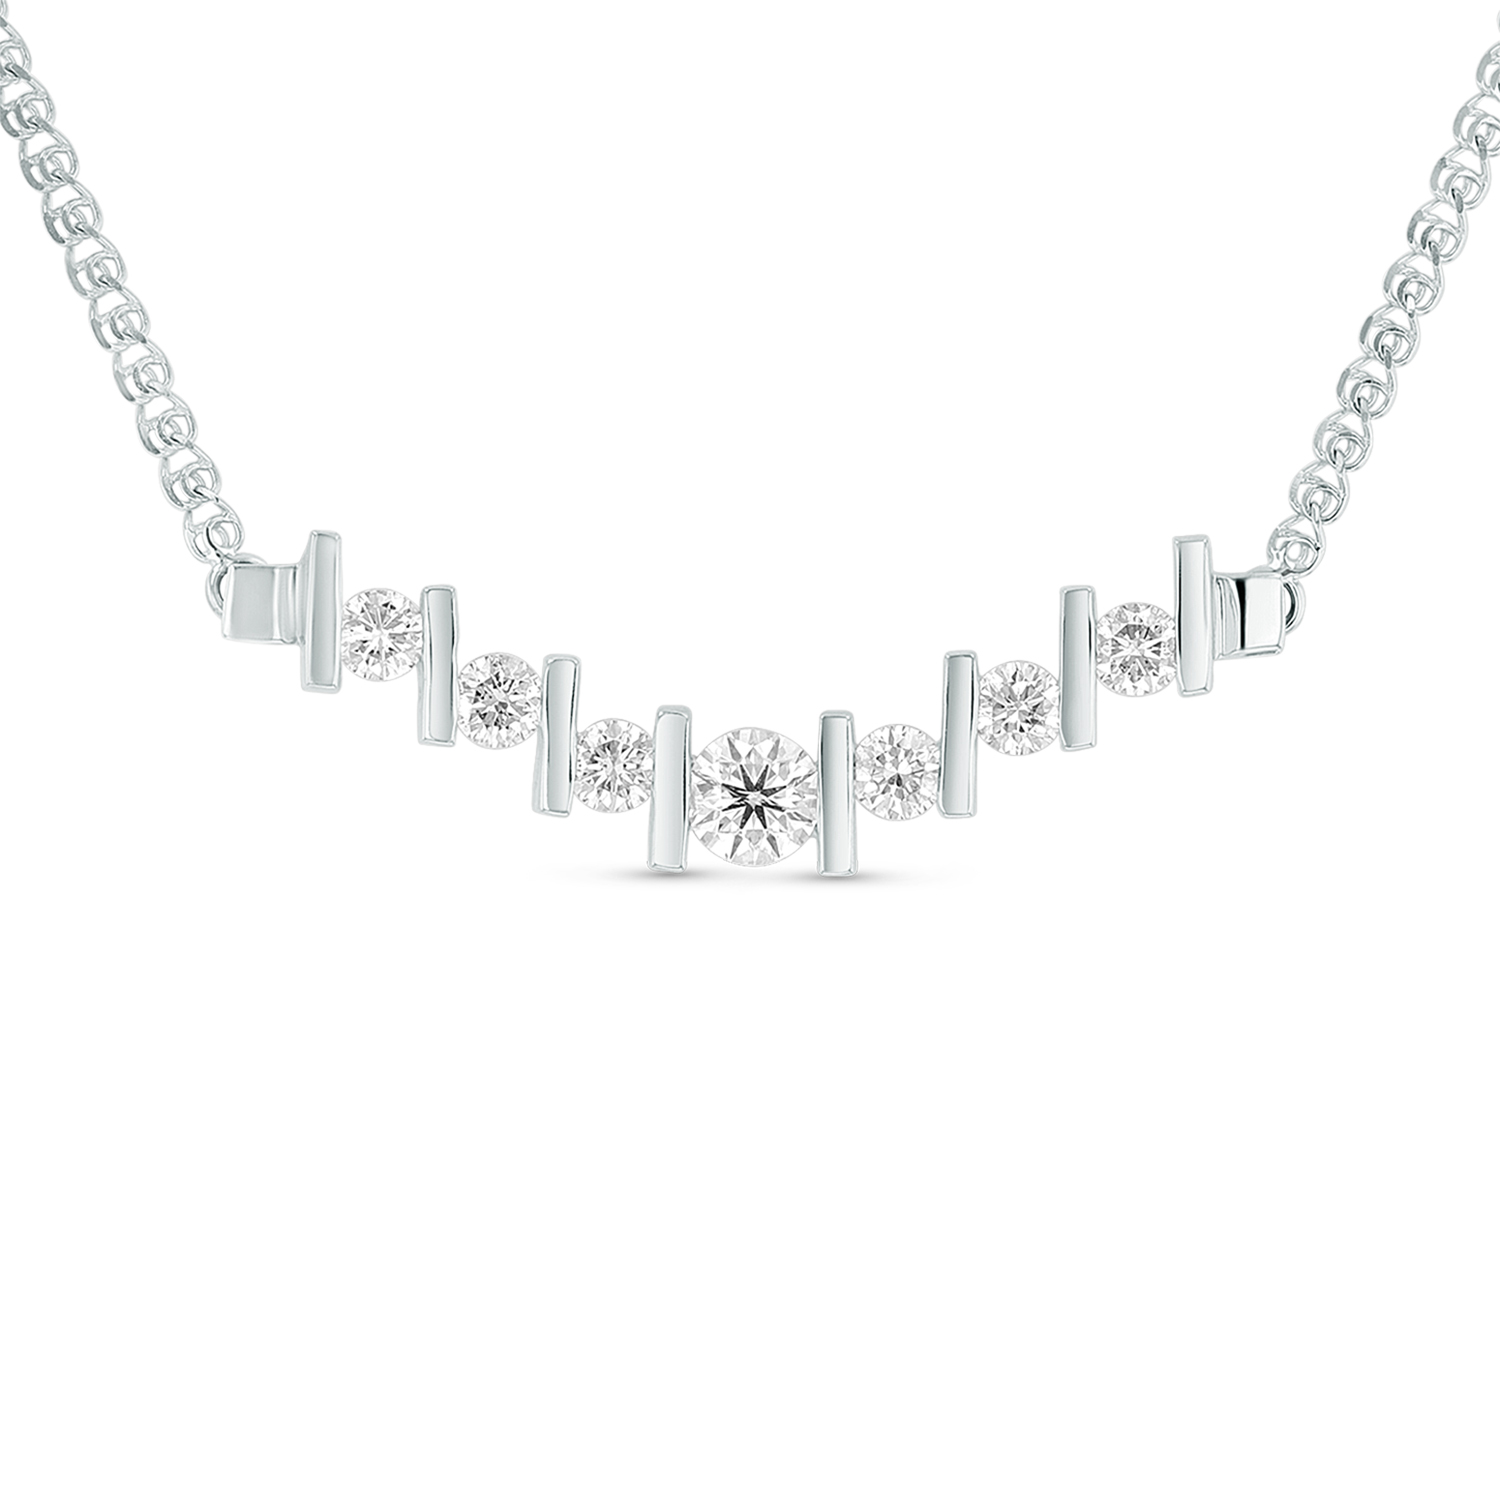 View 1.05ctw Diamond V Shaped Necklace in 14k Gold